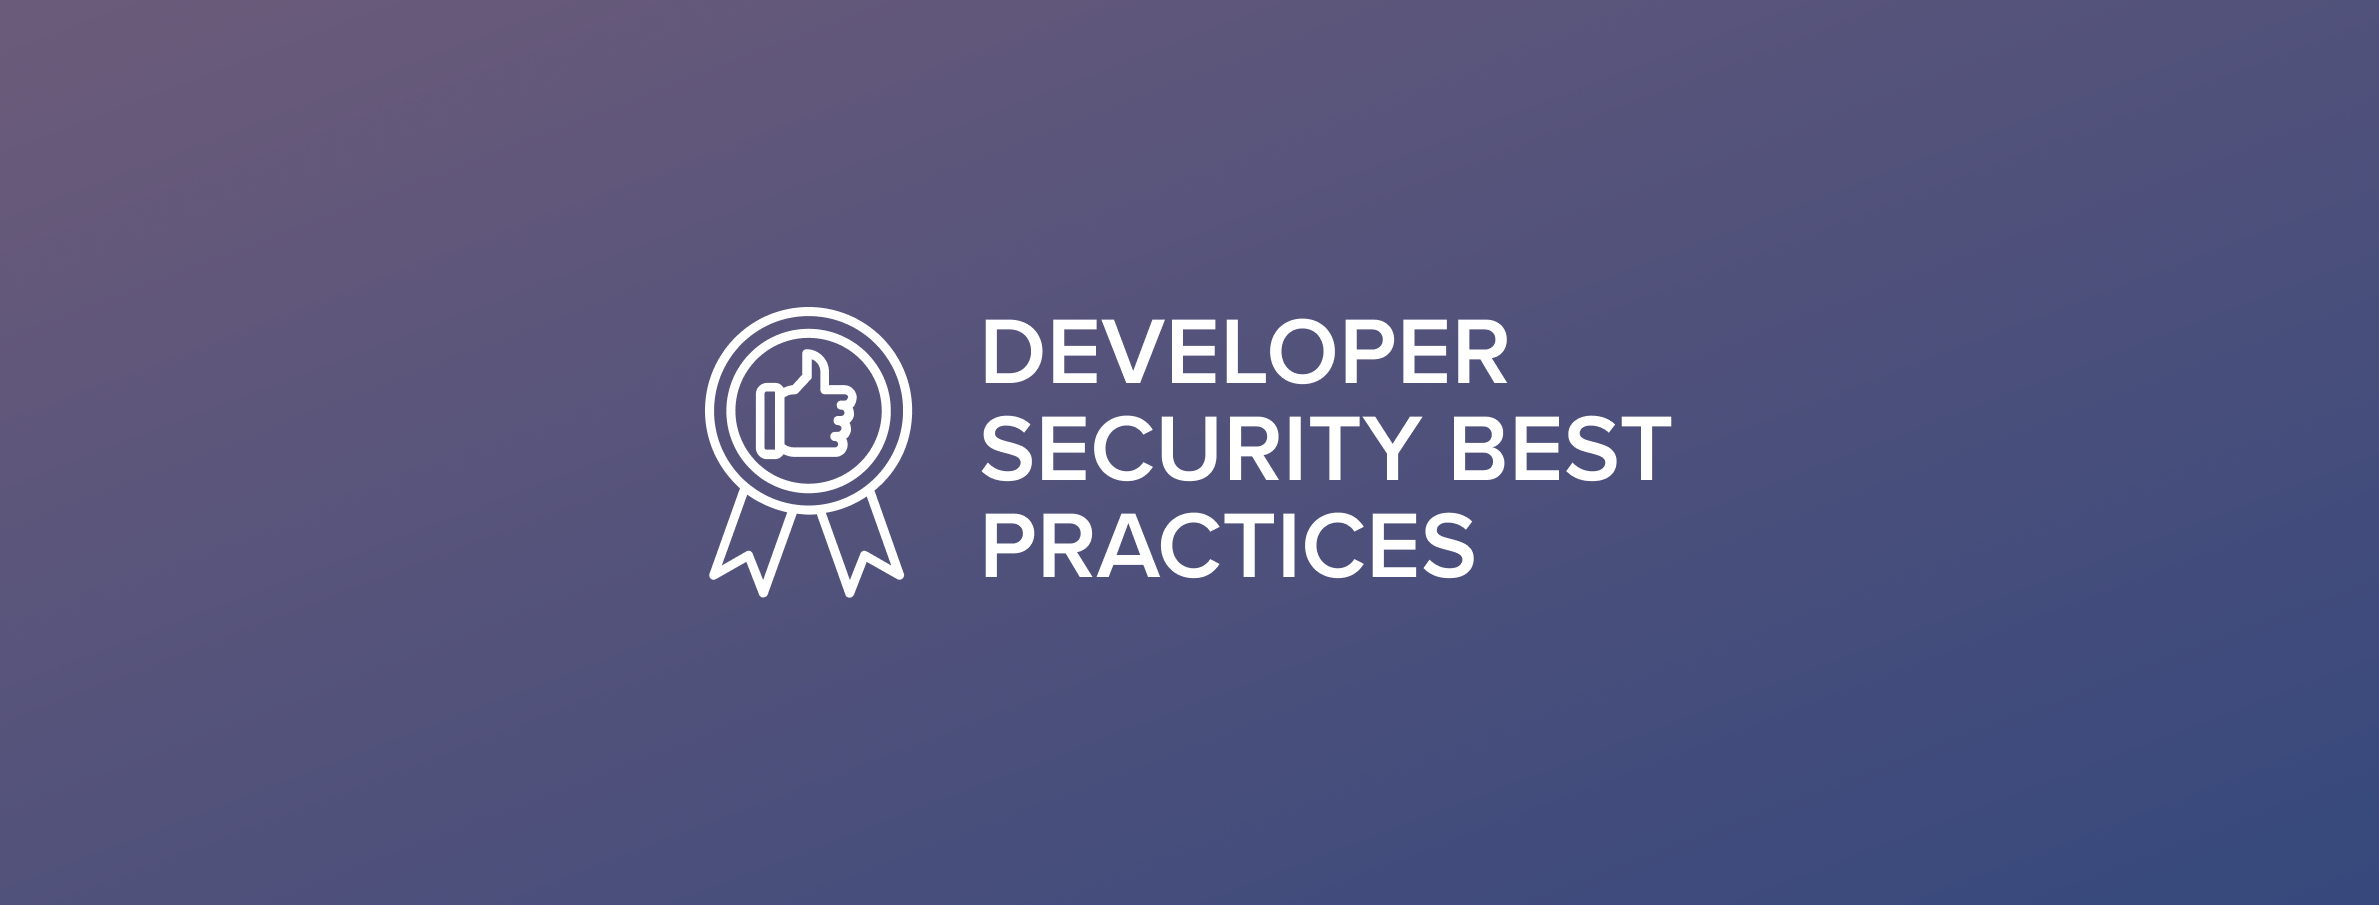 Developer security best practices: protecting against timing